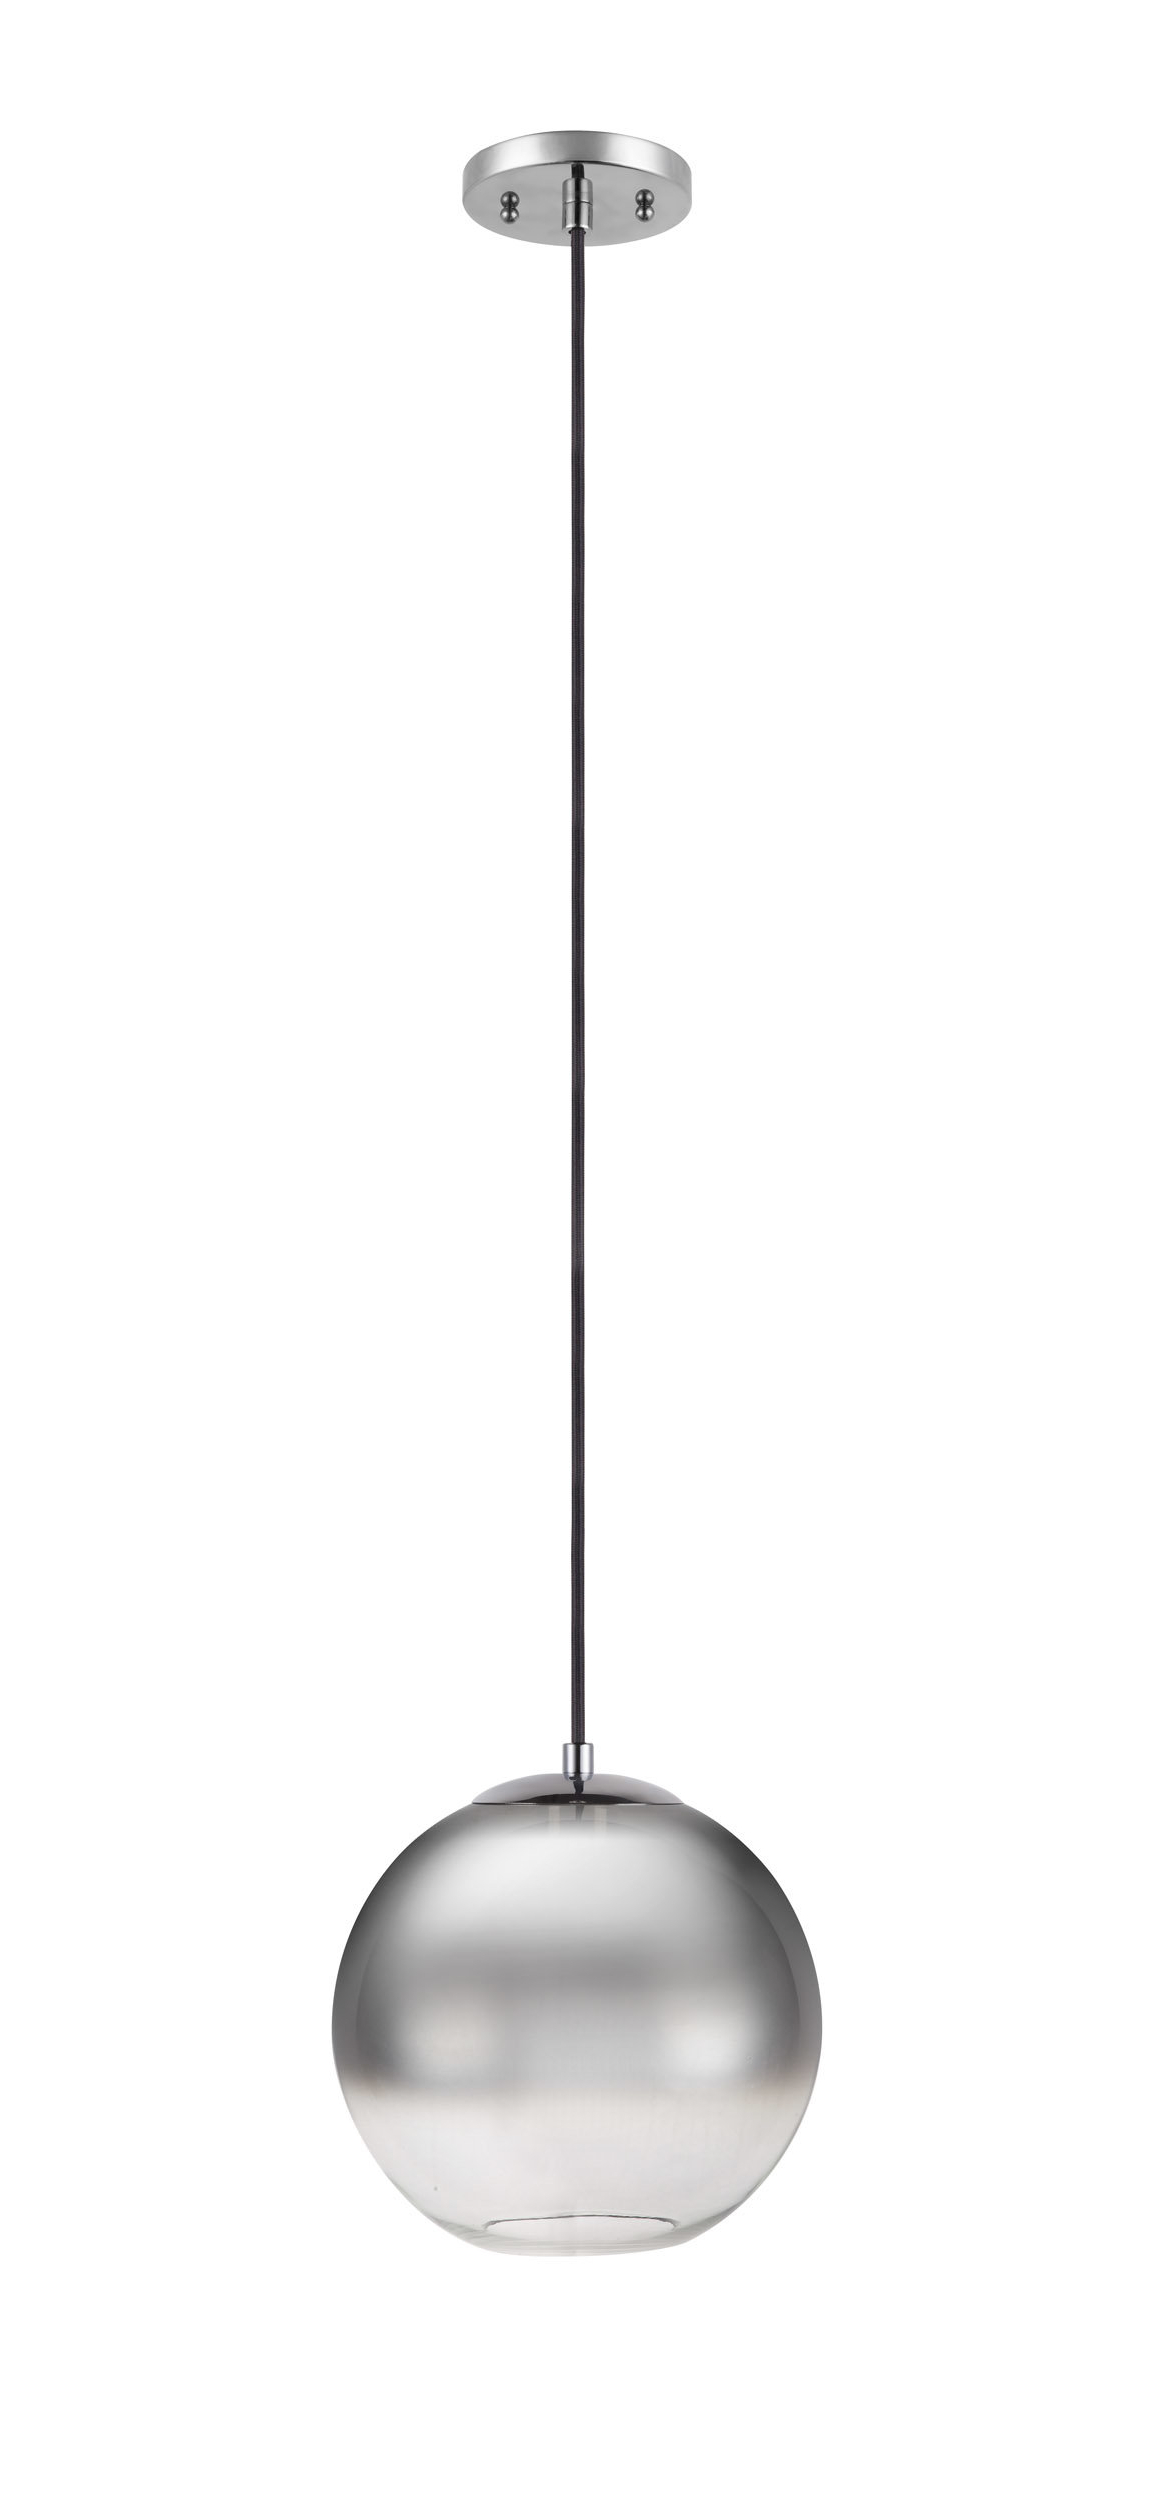 Bautista 1 Light Single Globe Pendants Throughout 2020 1 Light Globe Pendant (View 7 of 25)